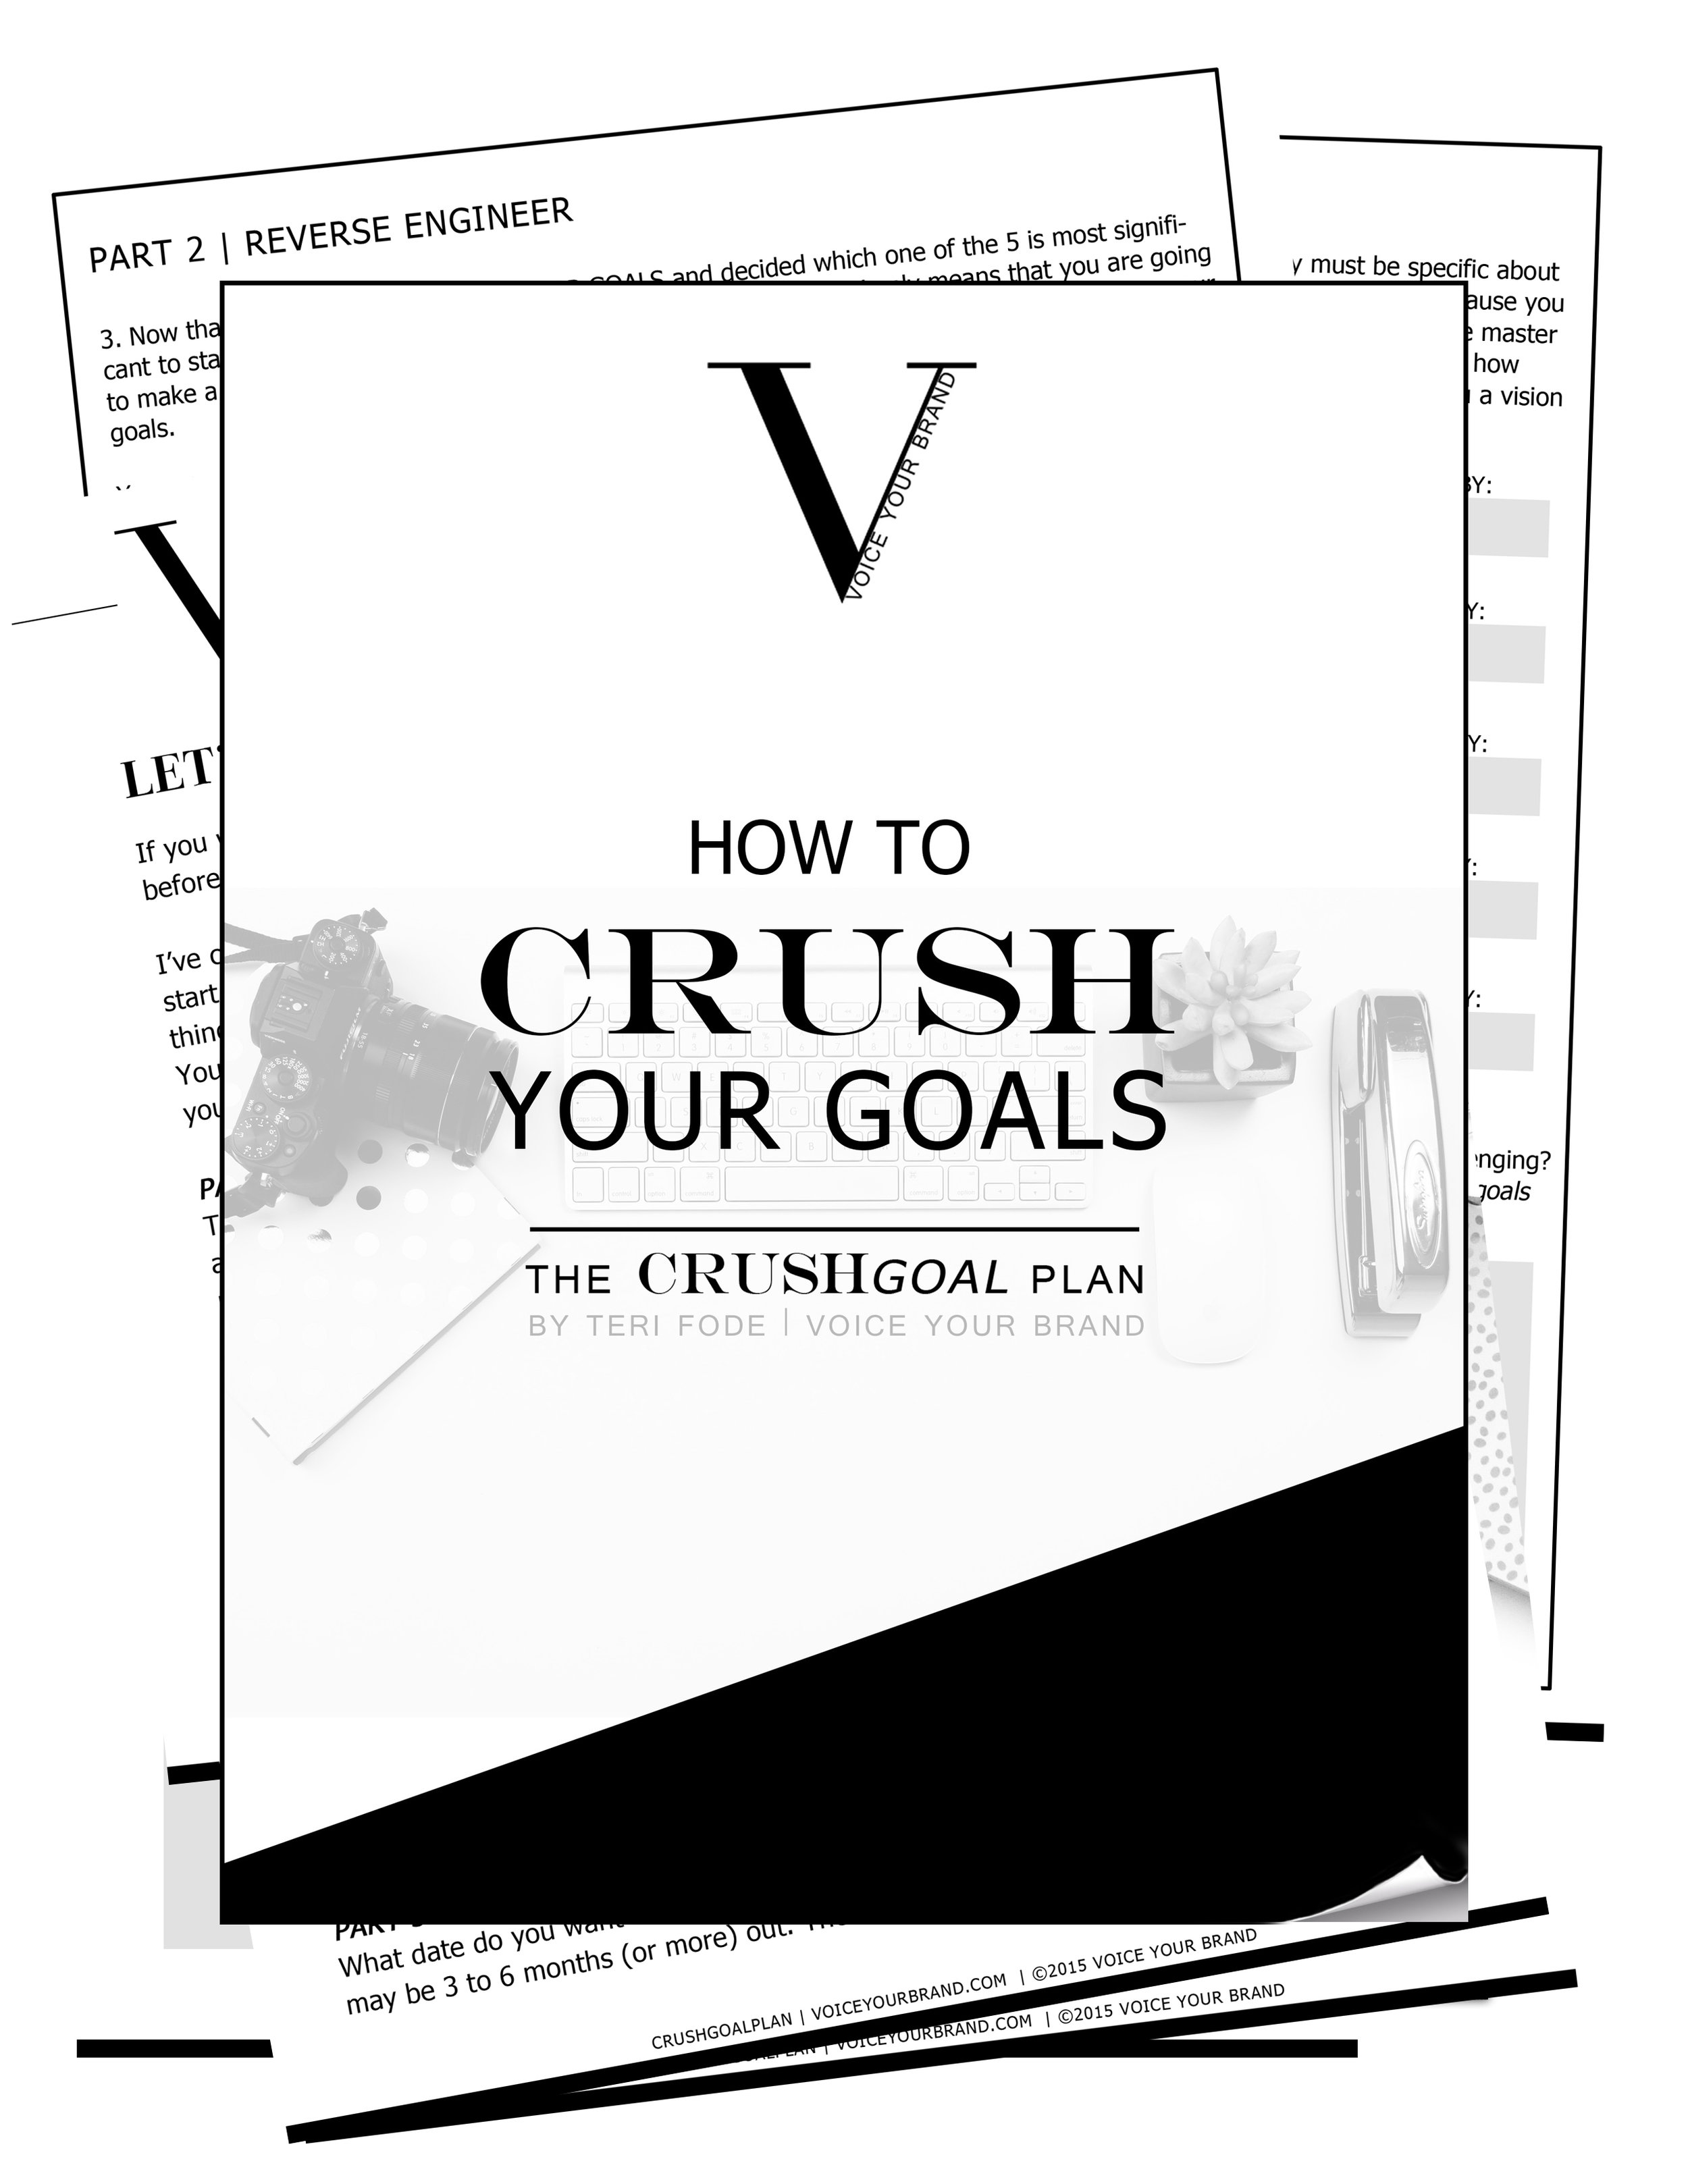 If you want to CRUSH your goals like never before this 5-Step plan will guide you in implementing daily tasks to realize those photography business goals that keep eluding you. Apply this system to your life and you'll be achieving your goals for real this time.